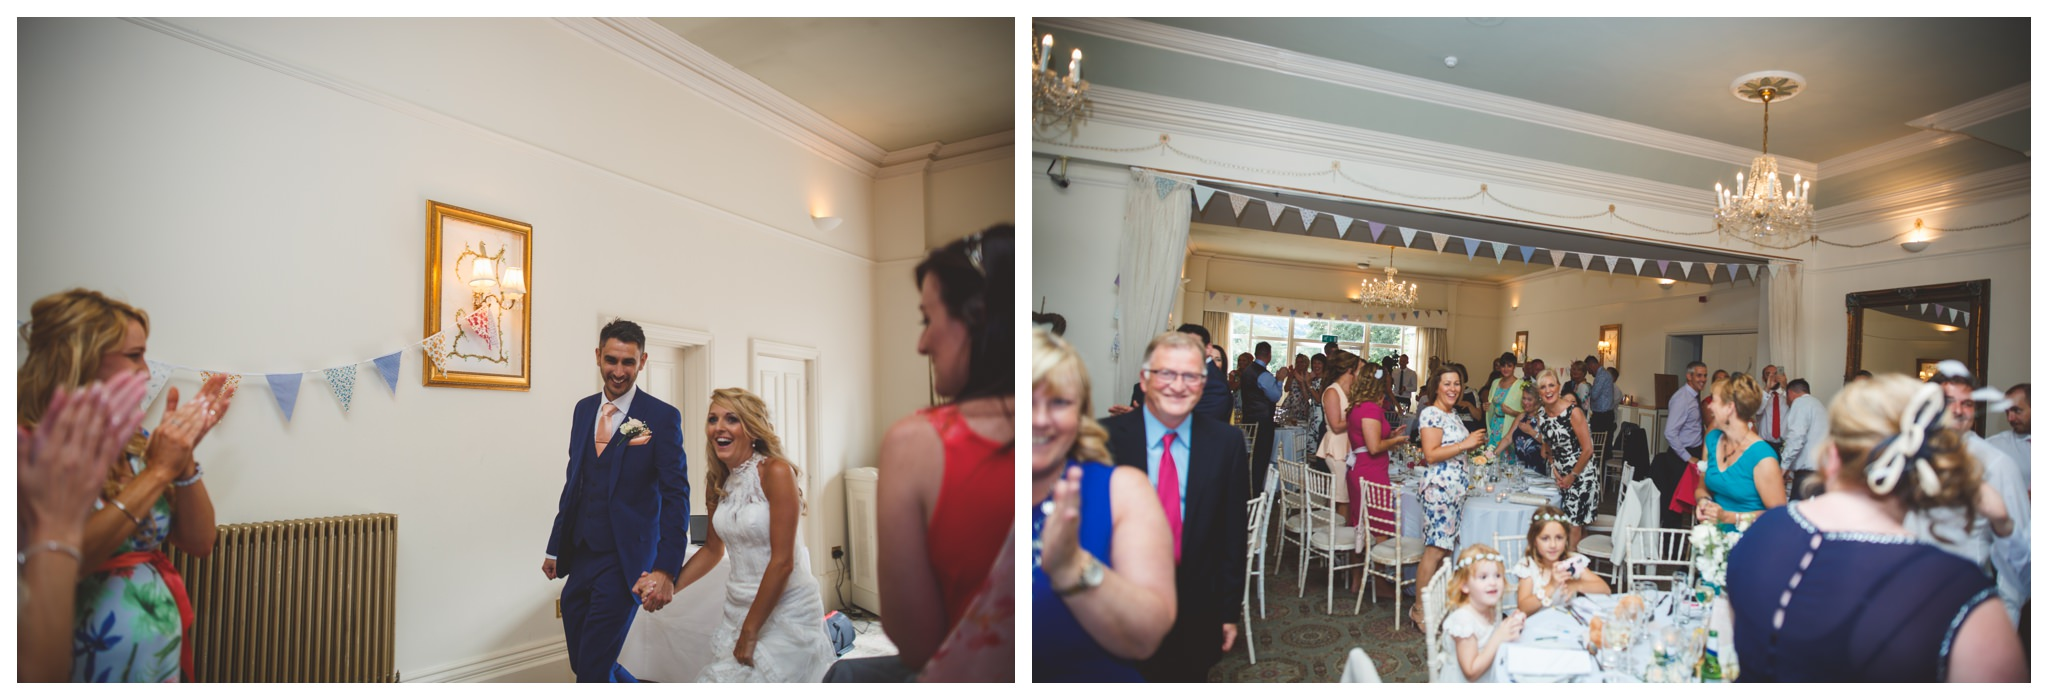 Richard Savage Photography - Wedding - Peterstone Court Brecon - 2016-05-11_0045